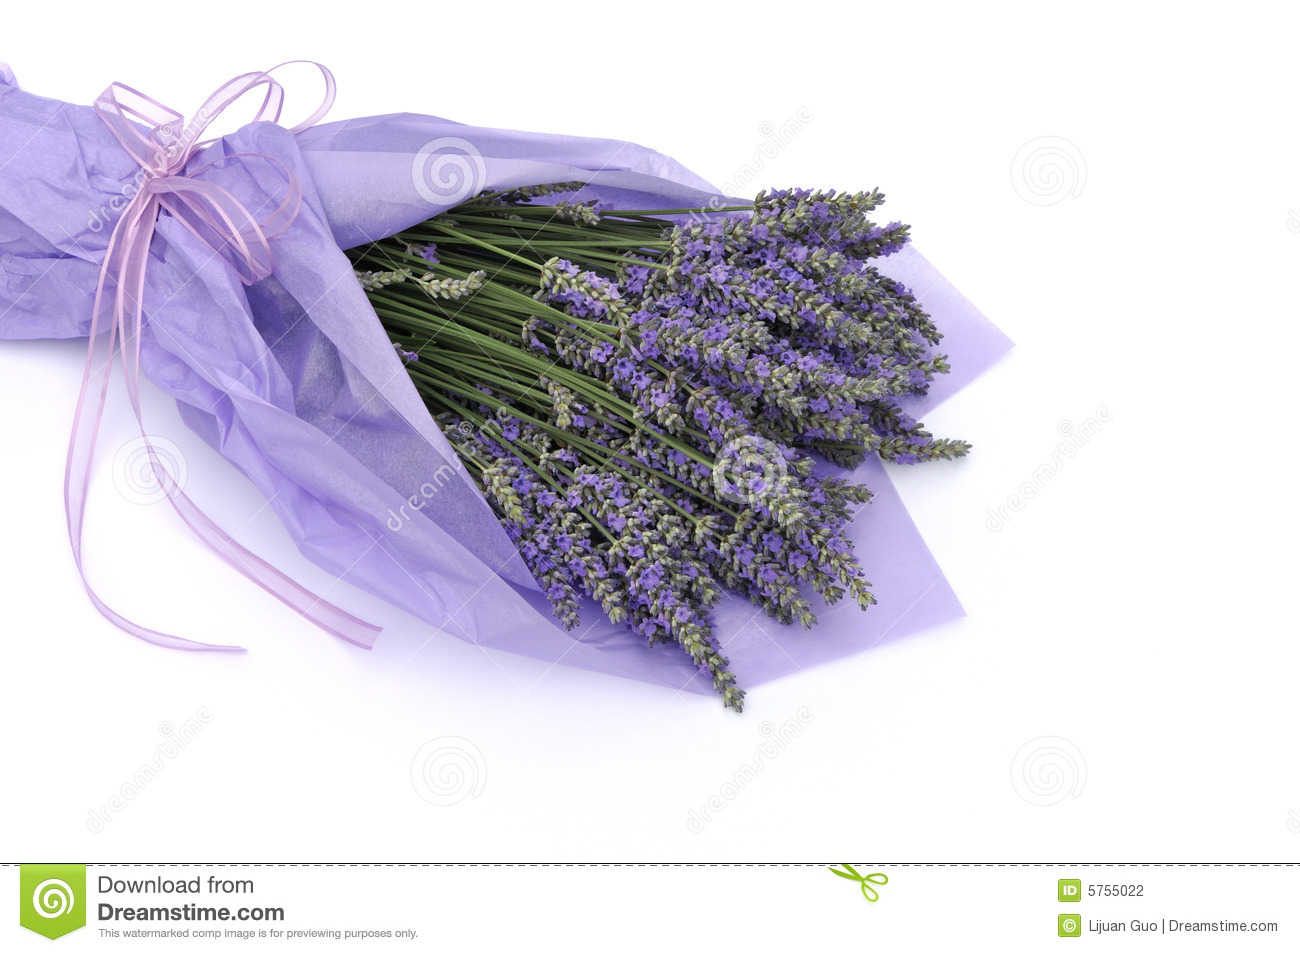 Lavender flower bouquet stock photo. Image of paper, wrap - 5755022